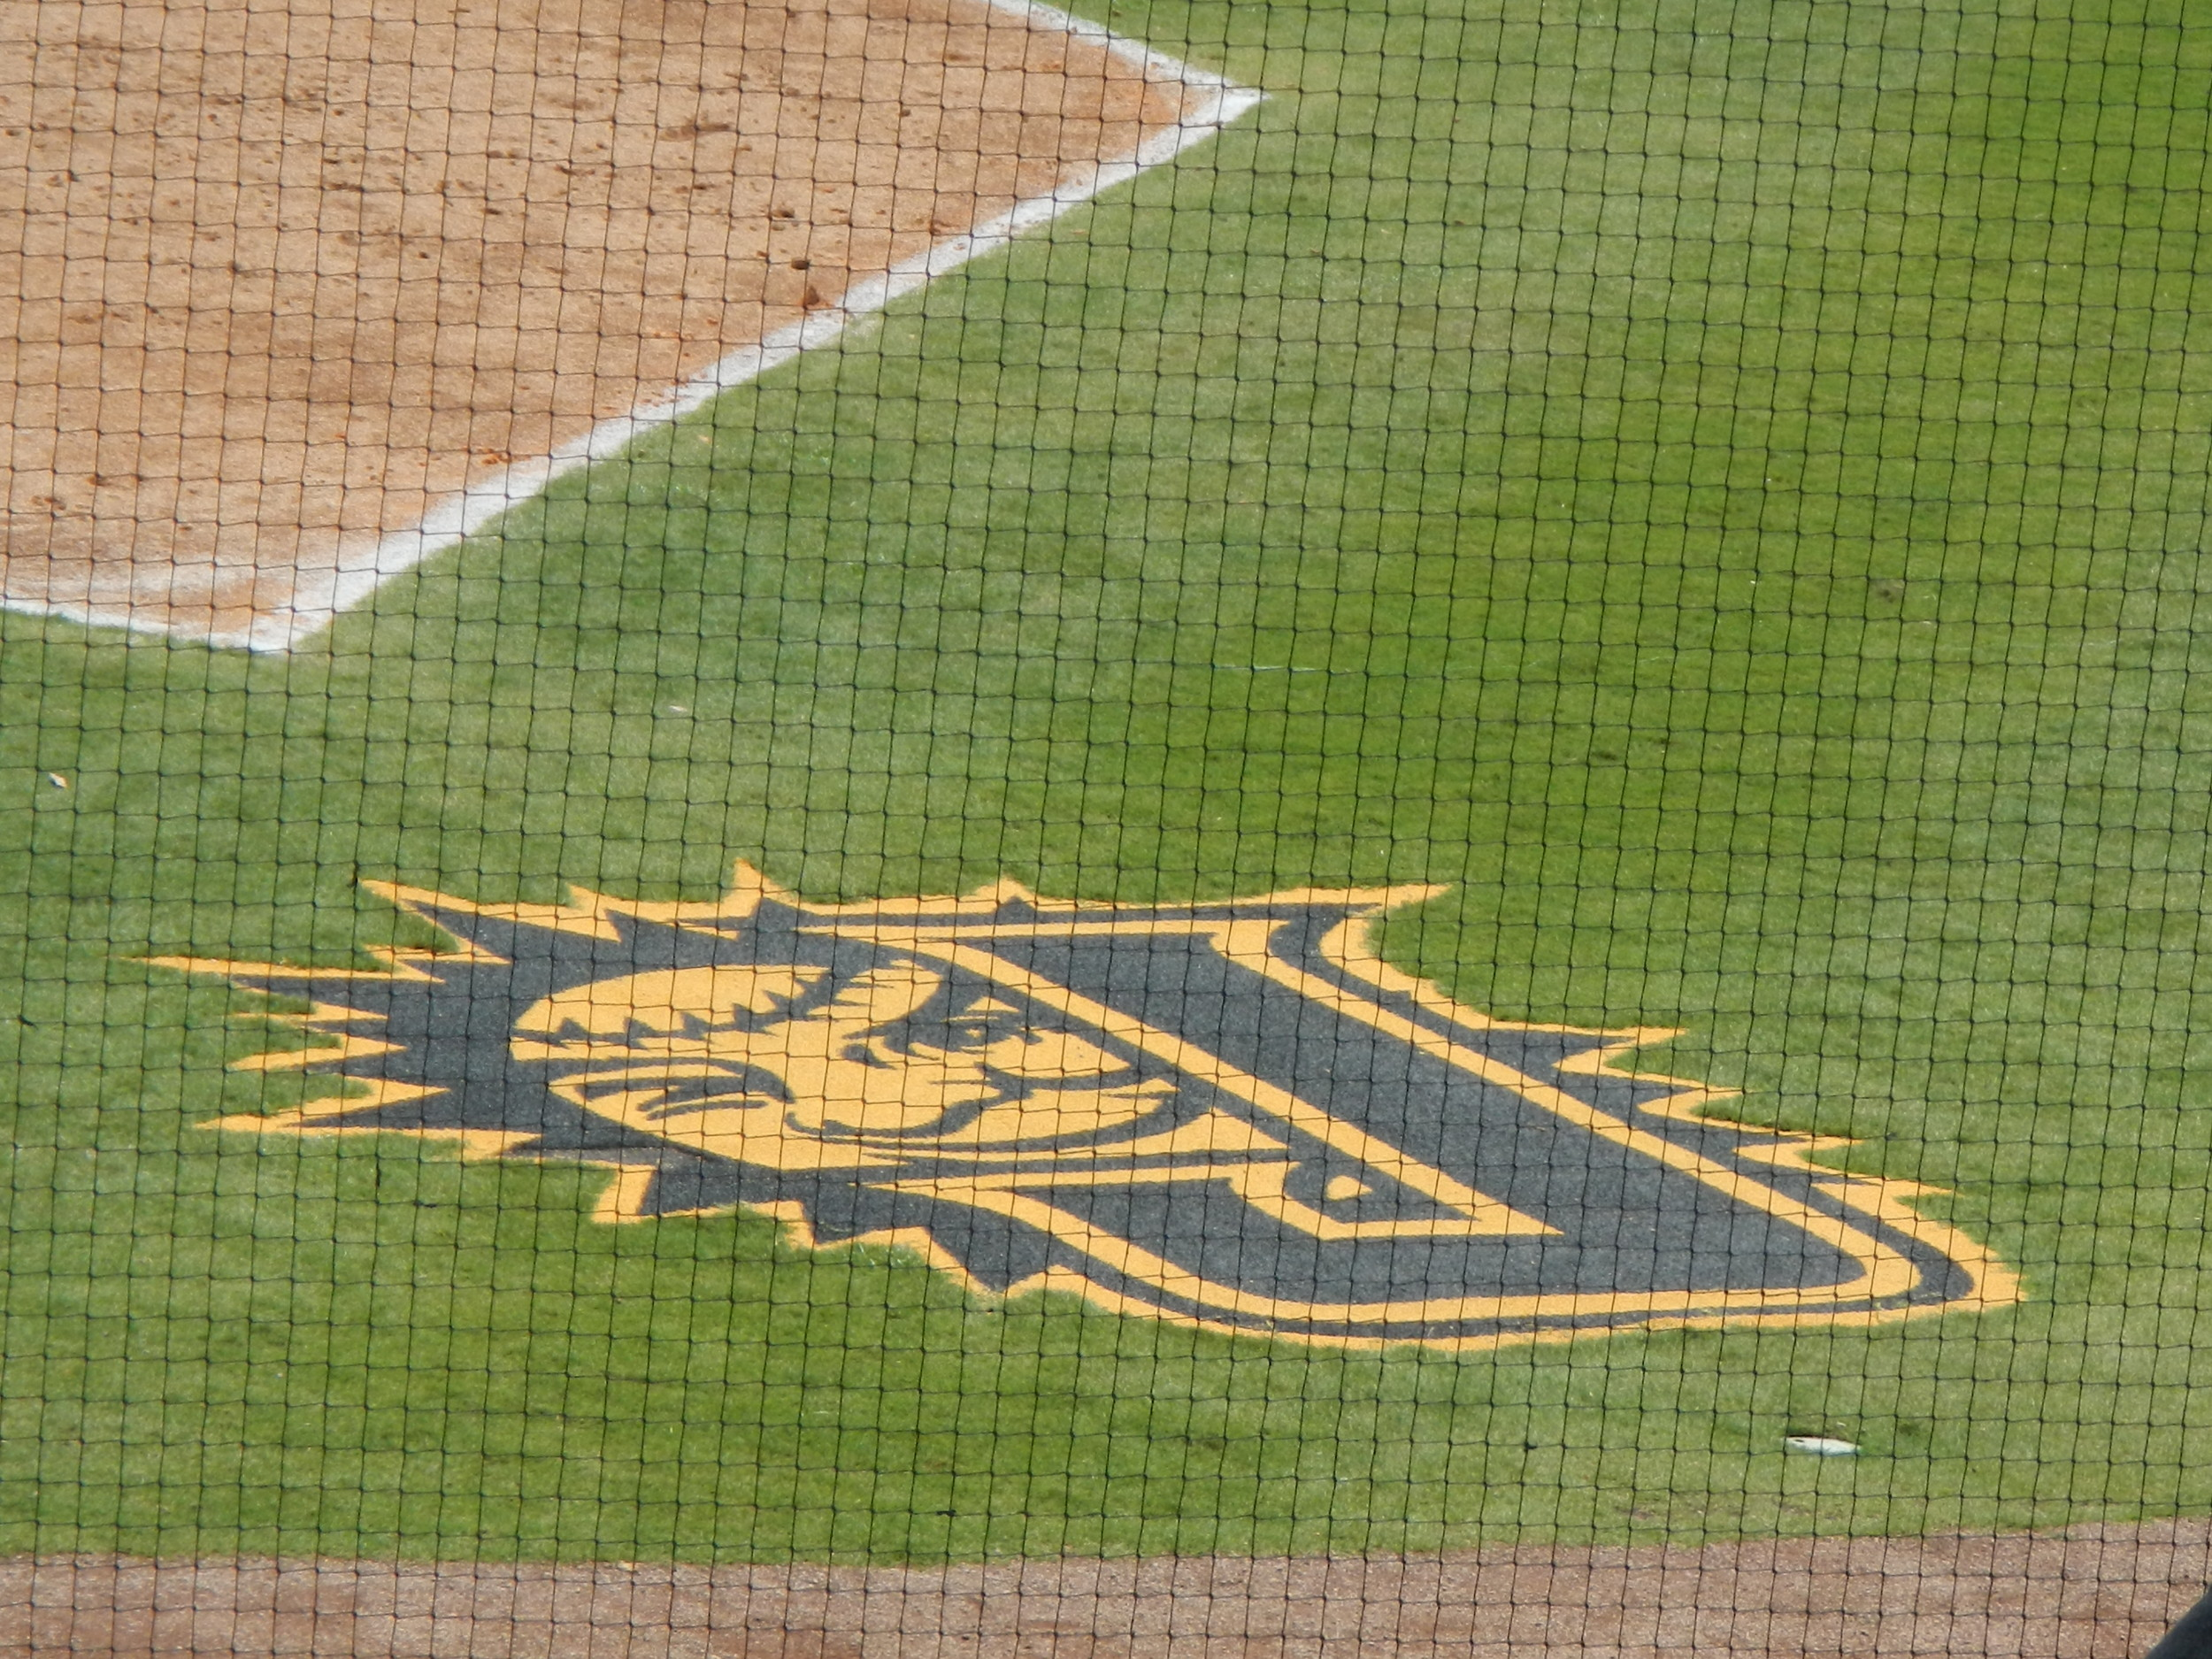 The Jacksonville's Sun logo shines bright behind home plate.